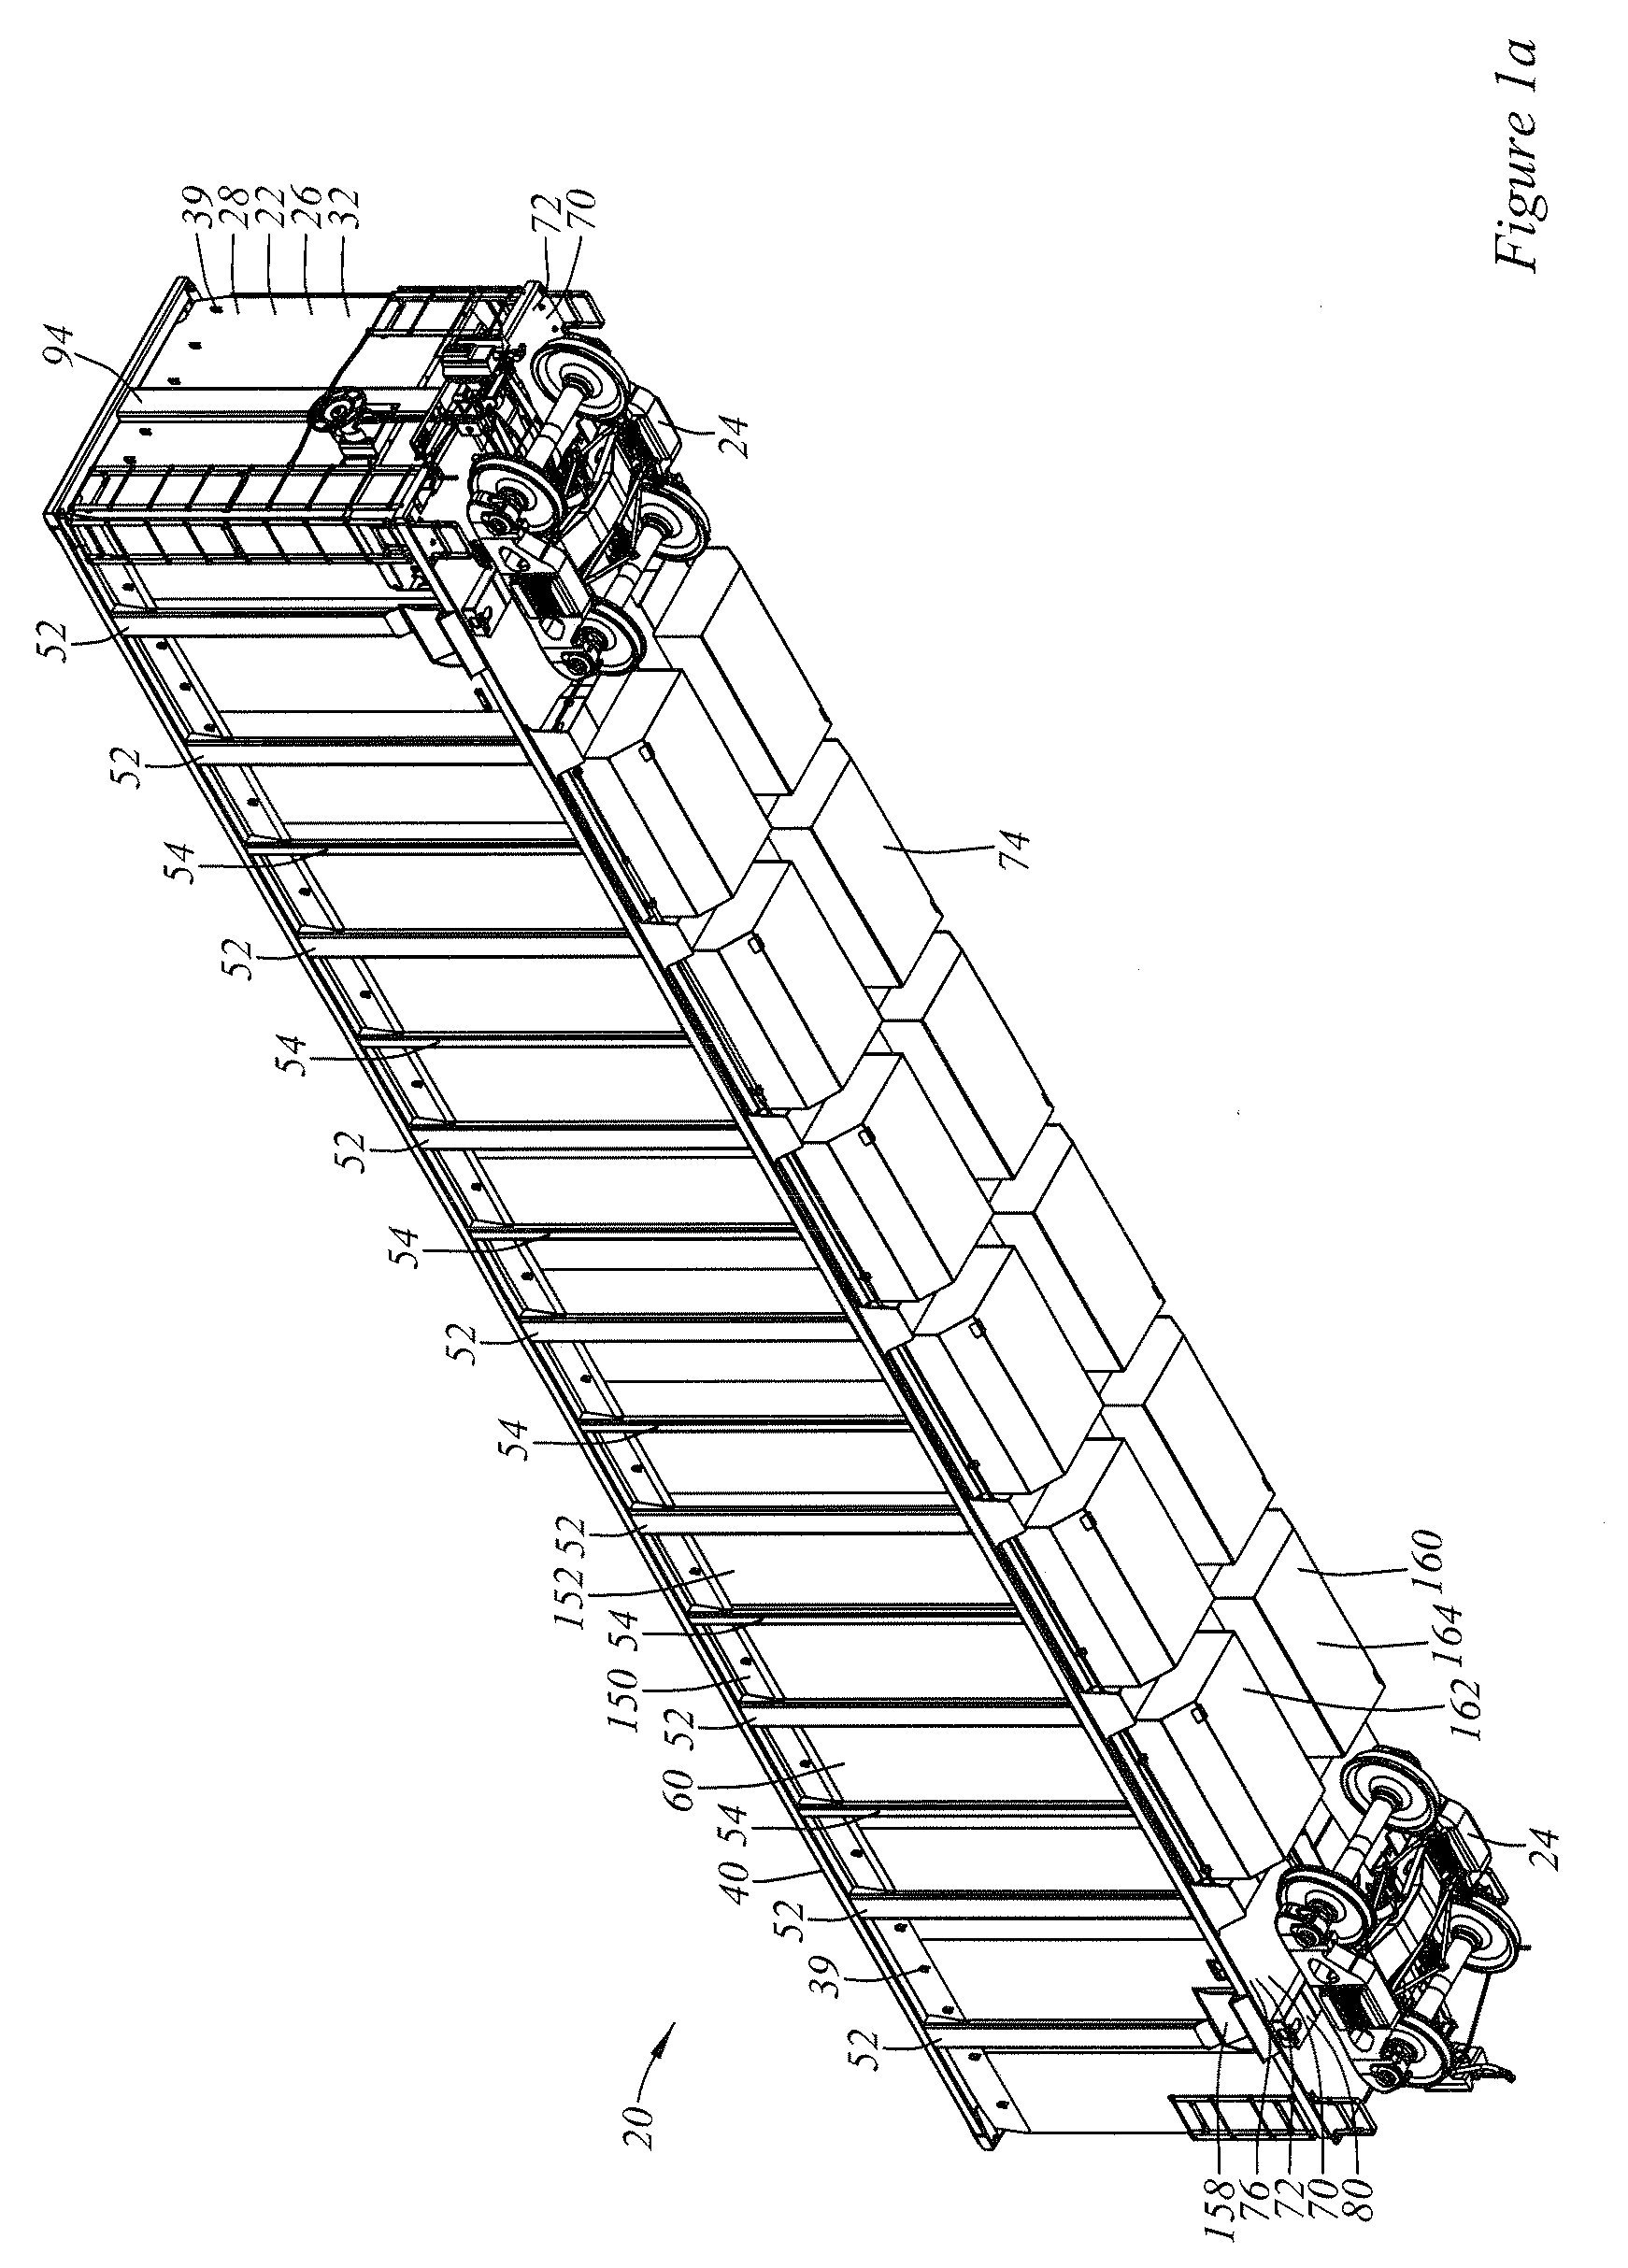 diagram of gondola patent us20100011987 - railroad gondola car structure ... firing order of 96 toyota camry 2 2 diagram of spark plug wires installation on 96 camry 2 2